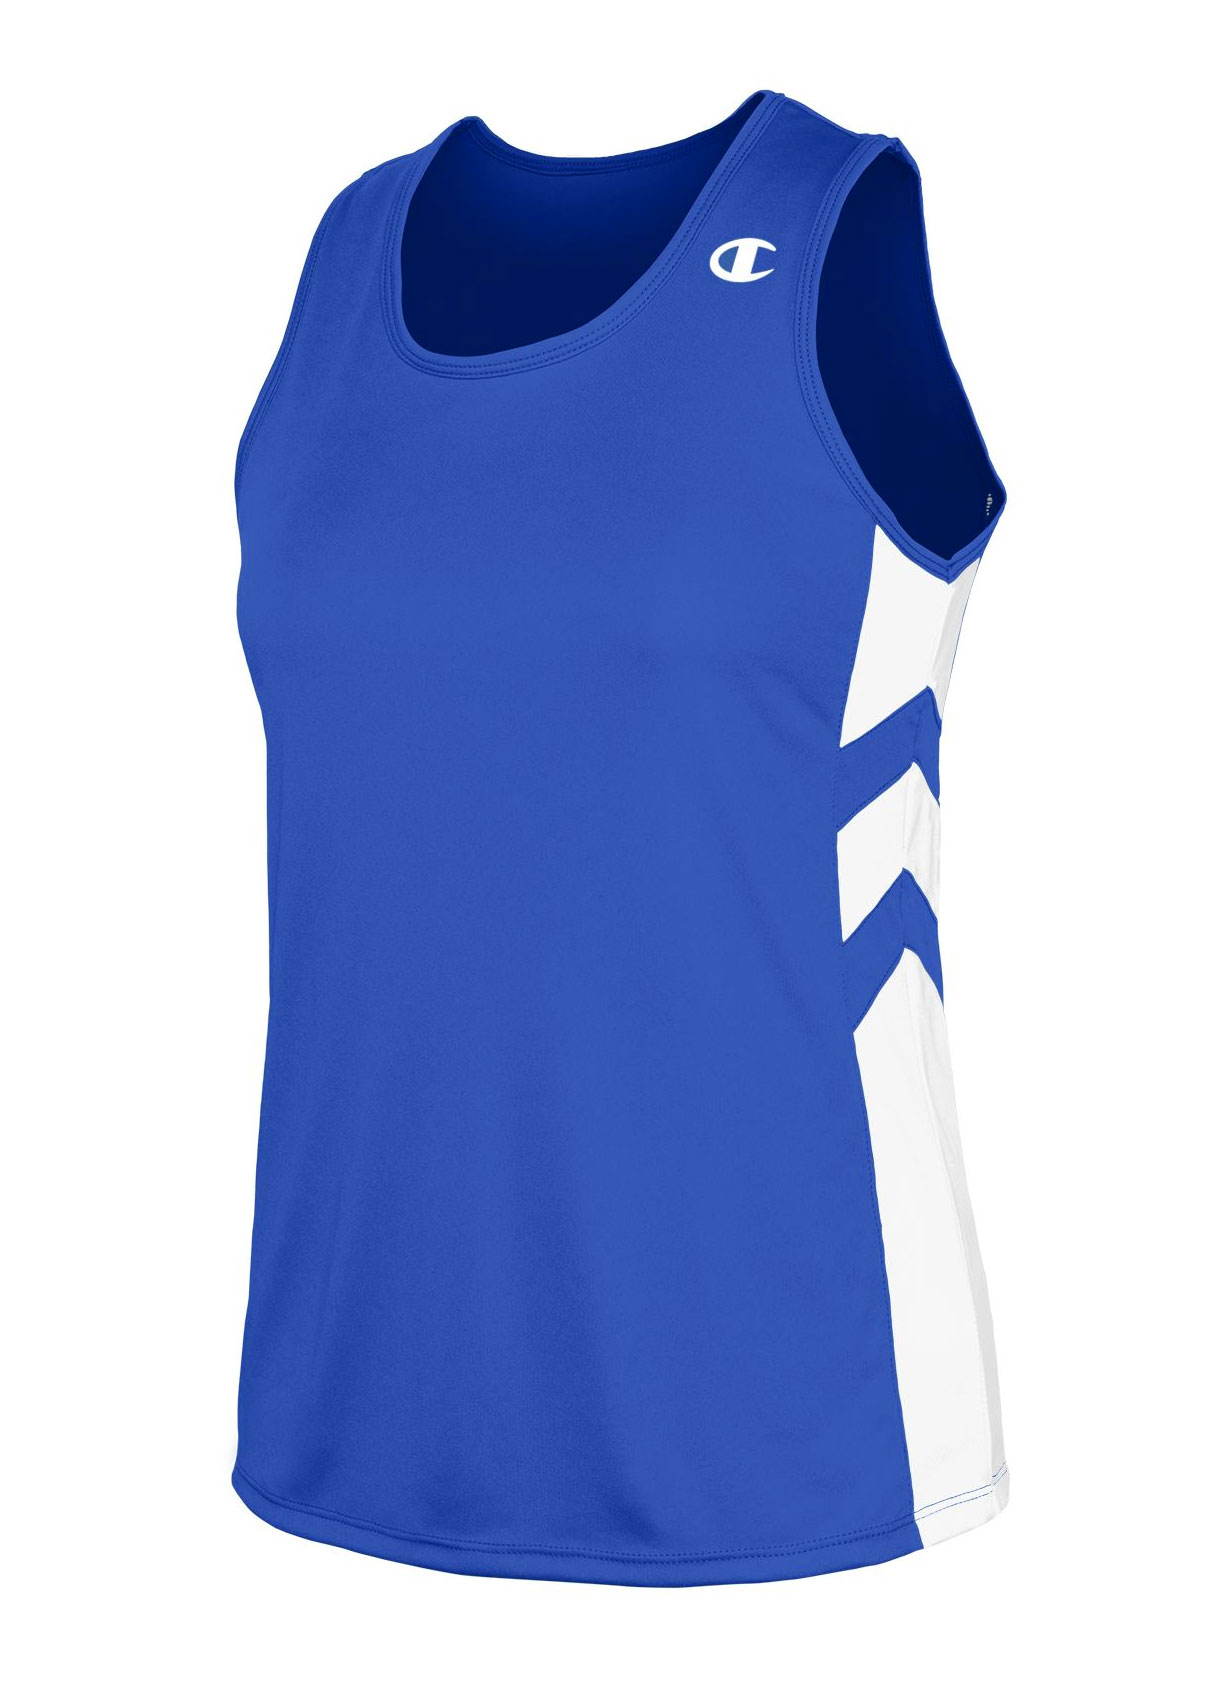 Womens Champion Stride Singlet